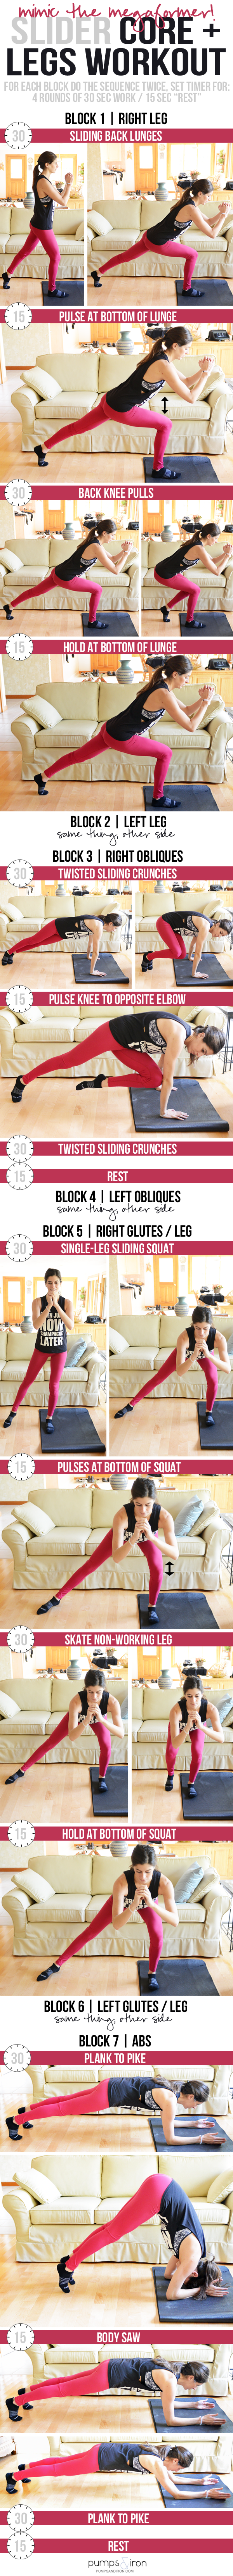 Mimic the megaformer with this sock (or slider) workout! It'll target your core and legs